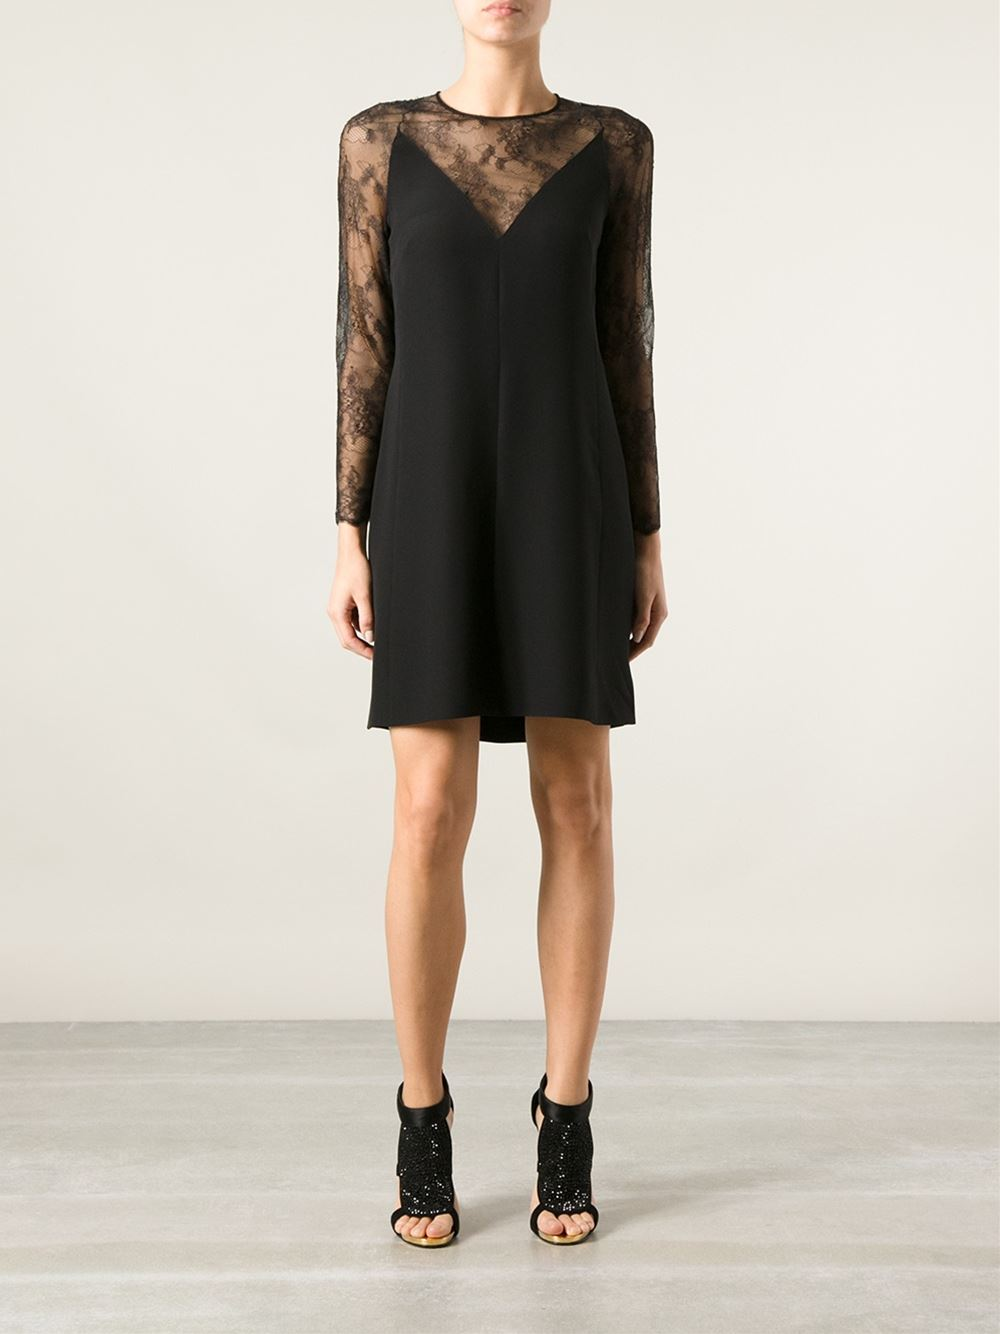 Valentino Lace Panel Dress - Spinnaker 141 - Farfetch.com